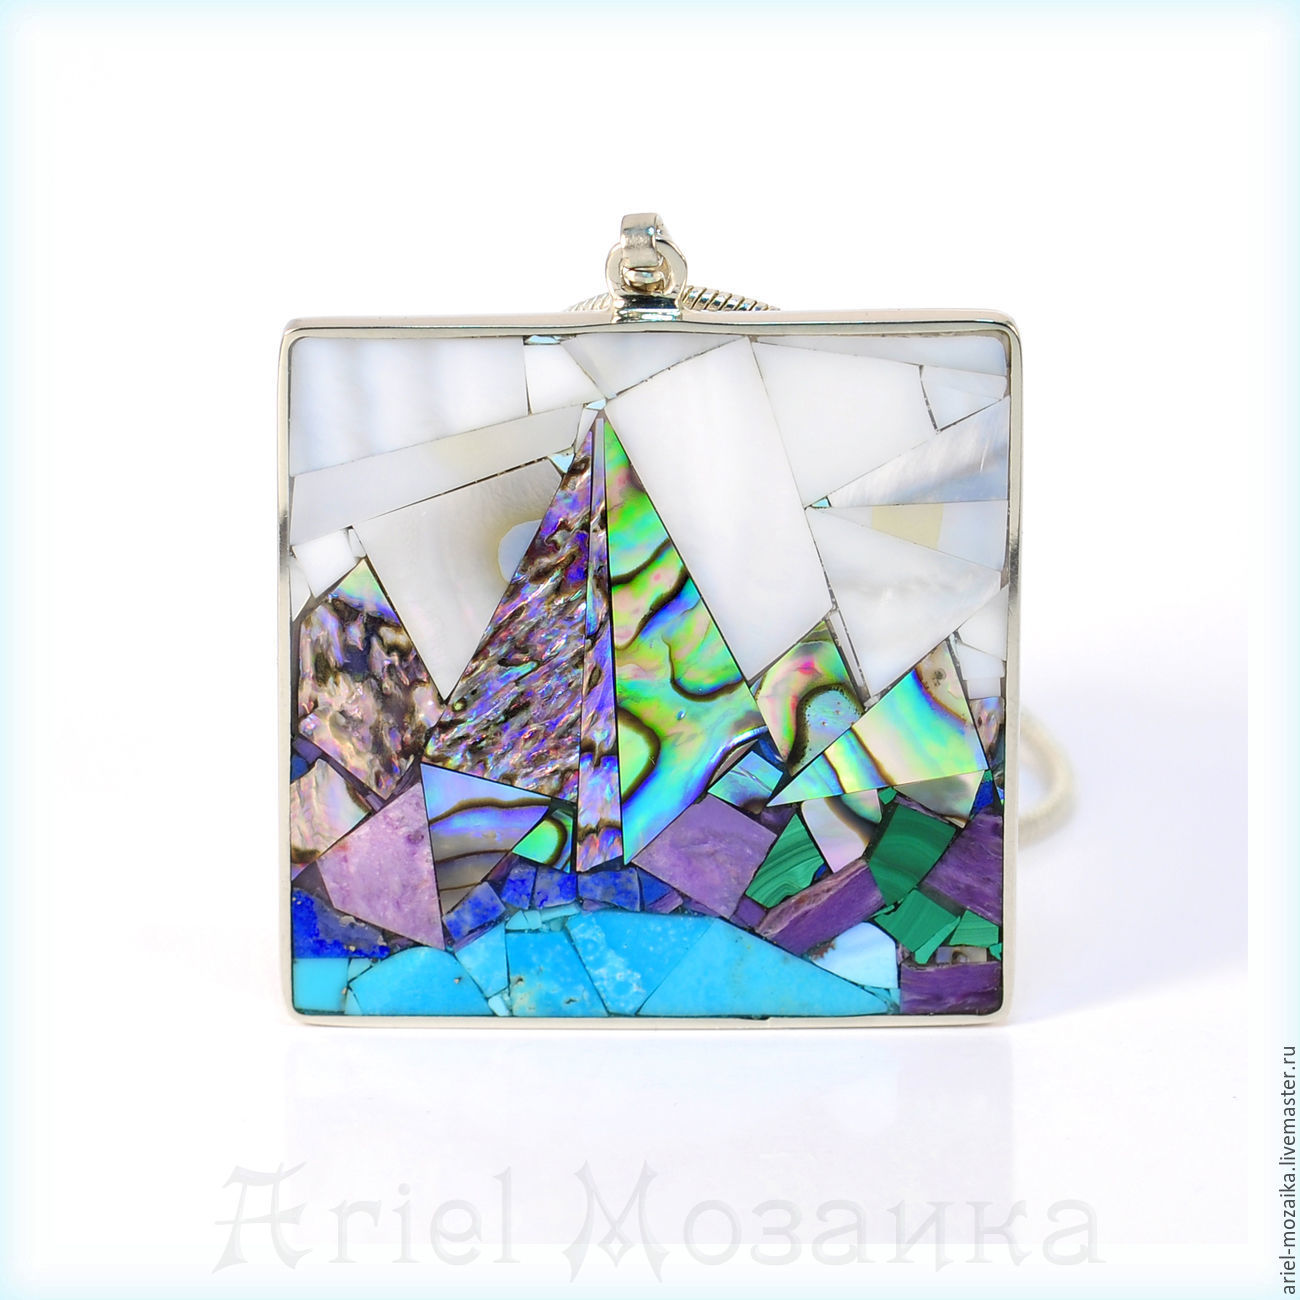 PENDANT `Landscape. The day of` ARIEL - Alena - Moscow MOSAIC Pendant with turquoise Pendant with mother of pearl Pendant with malachite Pendant with charoite Pendant Mosaic